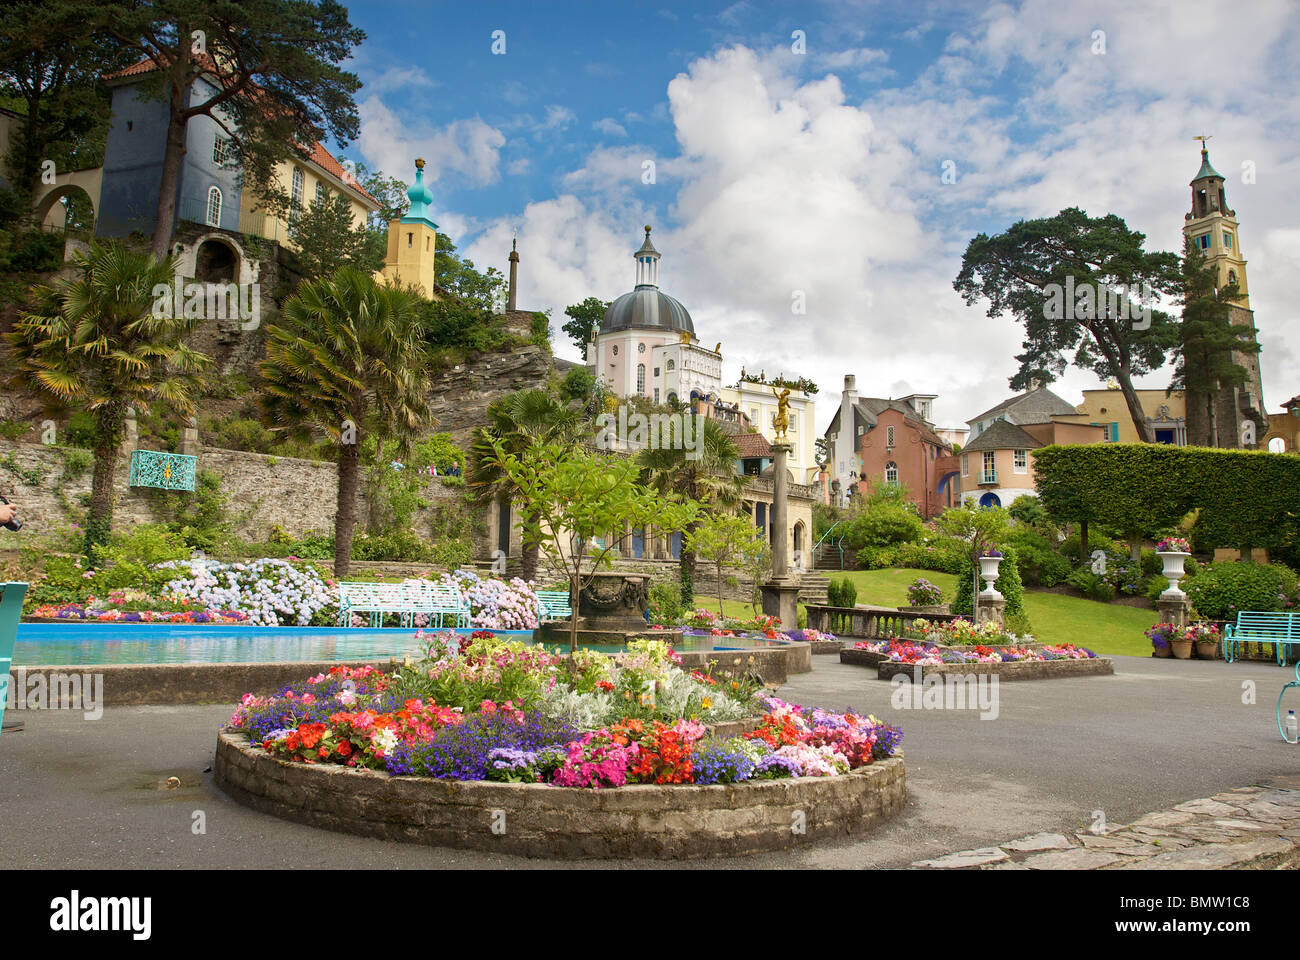 Portmeirion village. Clough Williams-Ellis fantasy village in North Wales. Site of the television series the prisoner. - Stock Image